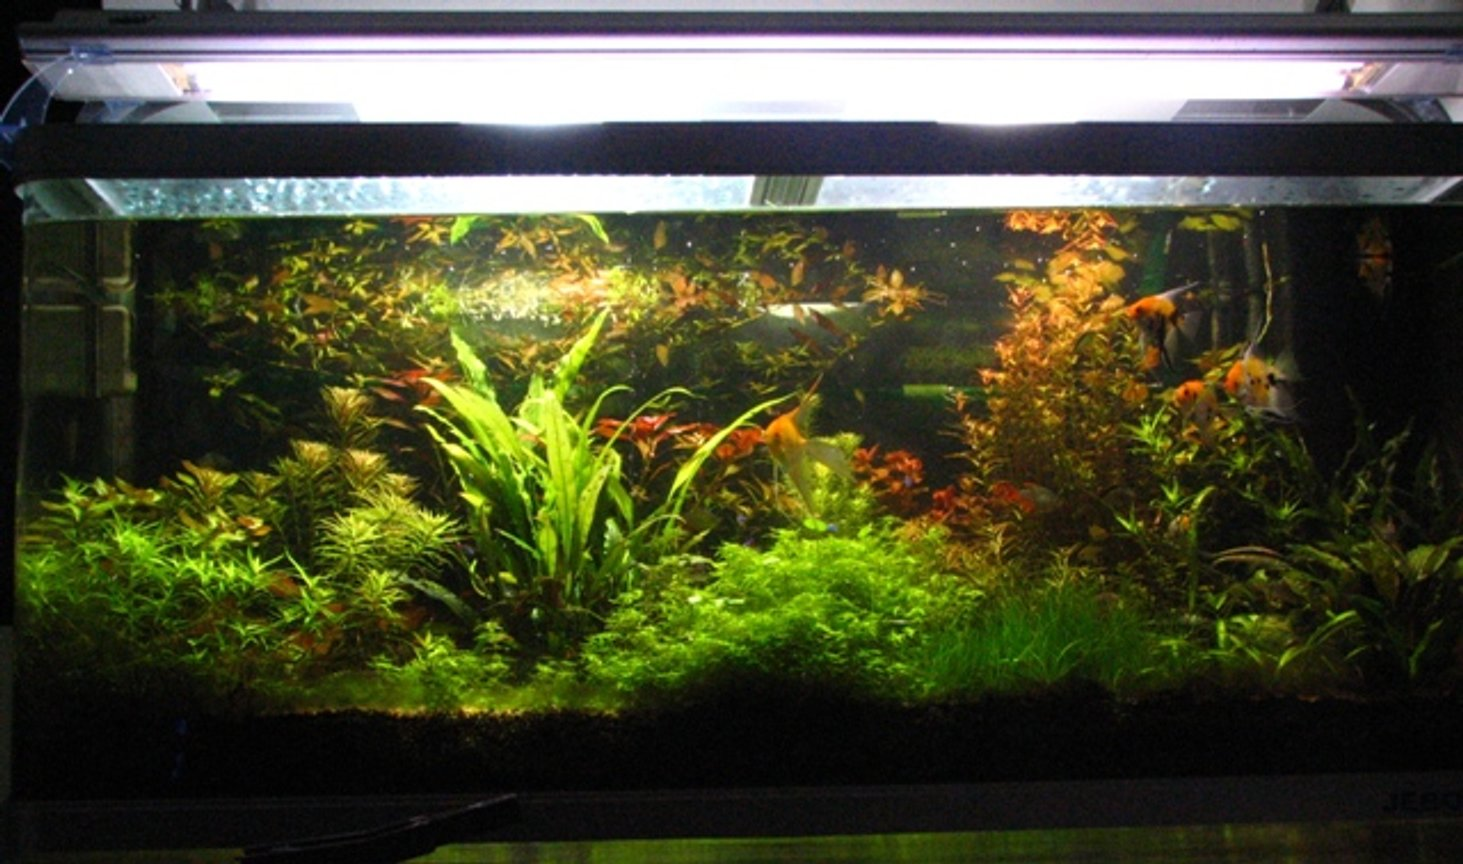 100 gallons planted tank (mostly live plants and fish) - Jebo 5oo litre tank 50cm by 50cm by 60cm Lighting: 2 HQI 150W 5400K + 2 times 36W Interpet triton Substrate: Fondo Vivo Prodac inyternational + humus + humus plus Filtration: Eheim 2260 cannister pressurised co2 4 kg Fertiliser: Tropica master grow + PMDD